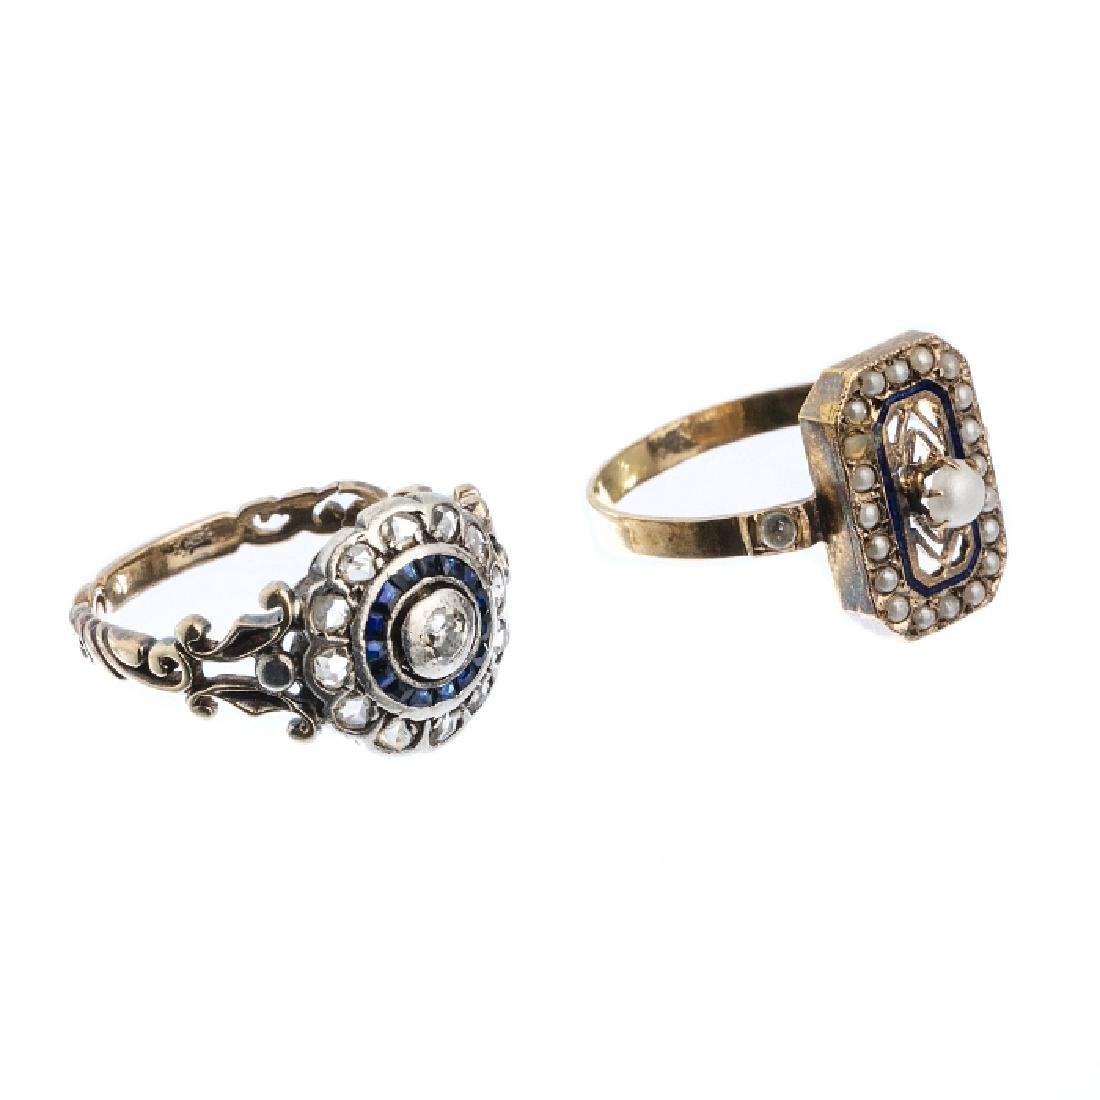 Set of two rings in silver and gold with sapphires,